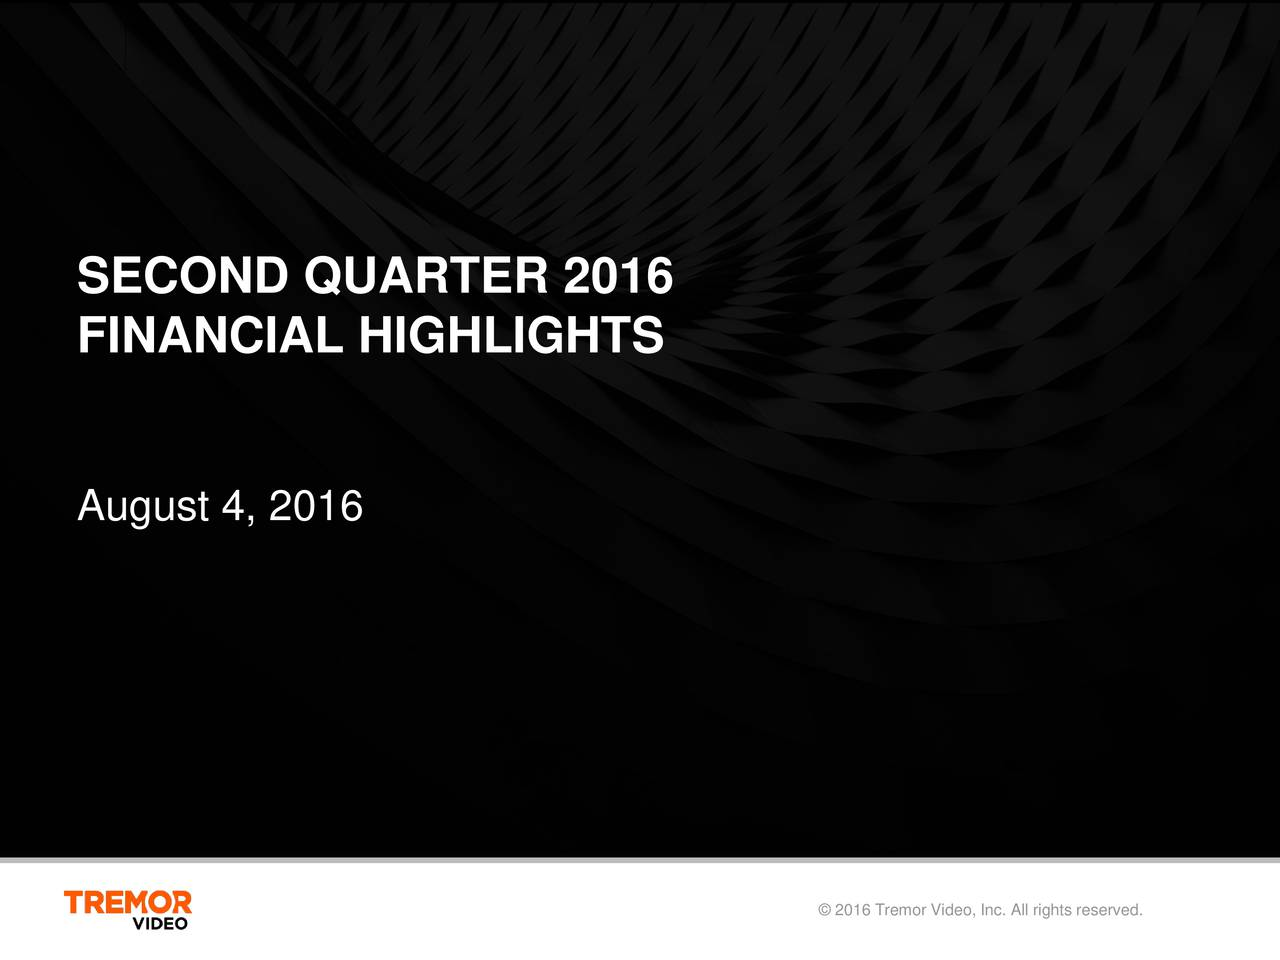 FINANCIAL HIGHLIGHTS August 4, 2016 2016 Tremor Video, Inc. All rights reserved.